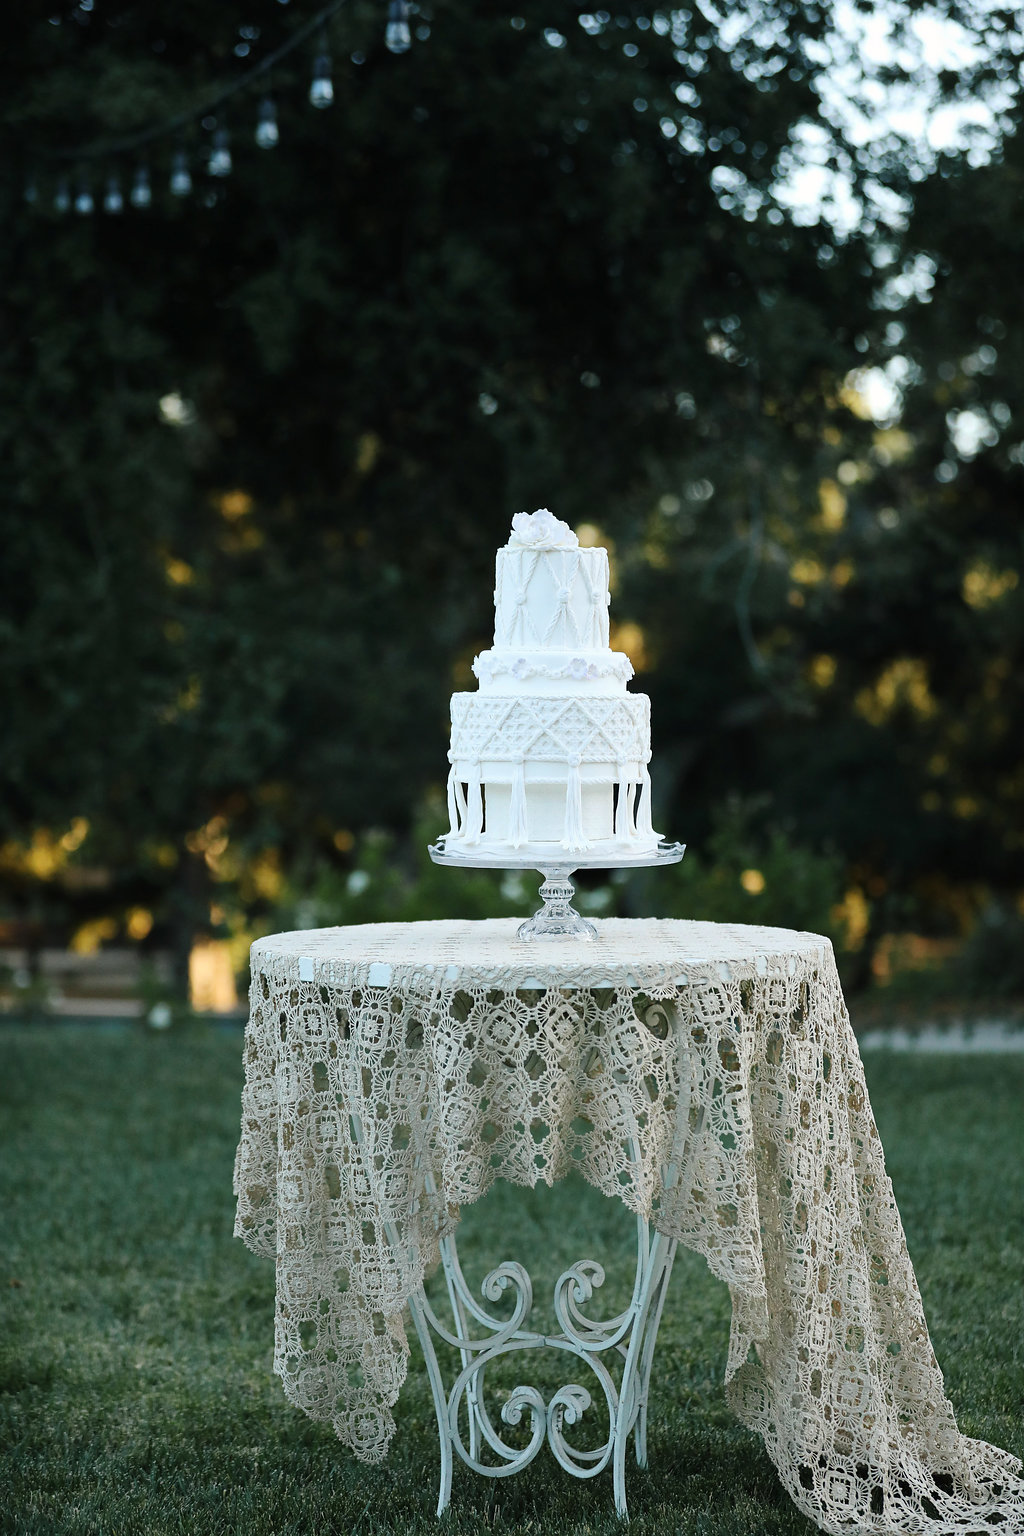 Macrame wedding cake by Susan Carberry on top of vintage lace table cloth and wrought iron table. All vintage rentals from Birdie in a Barn in the Temecula Valley.